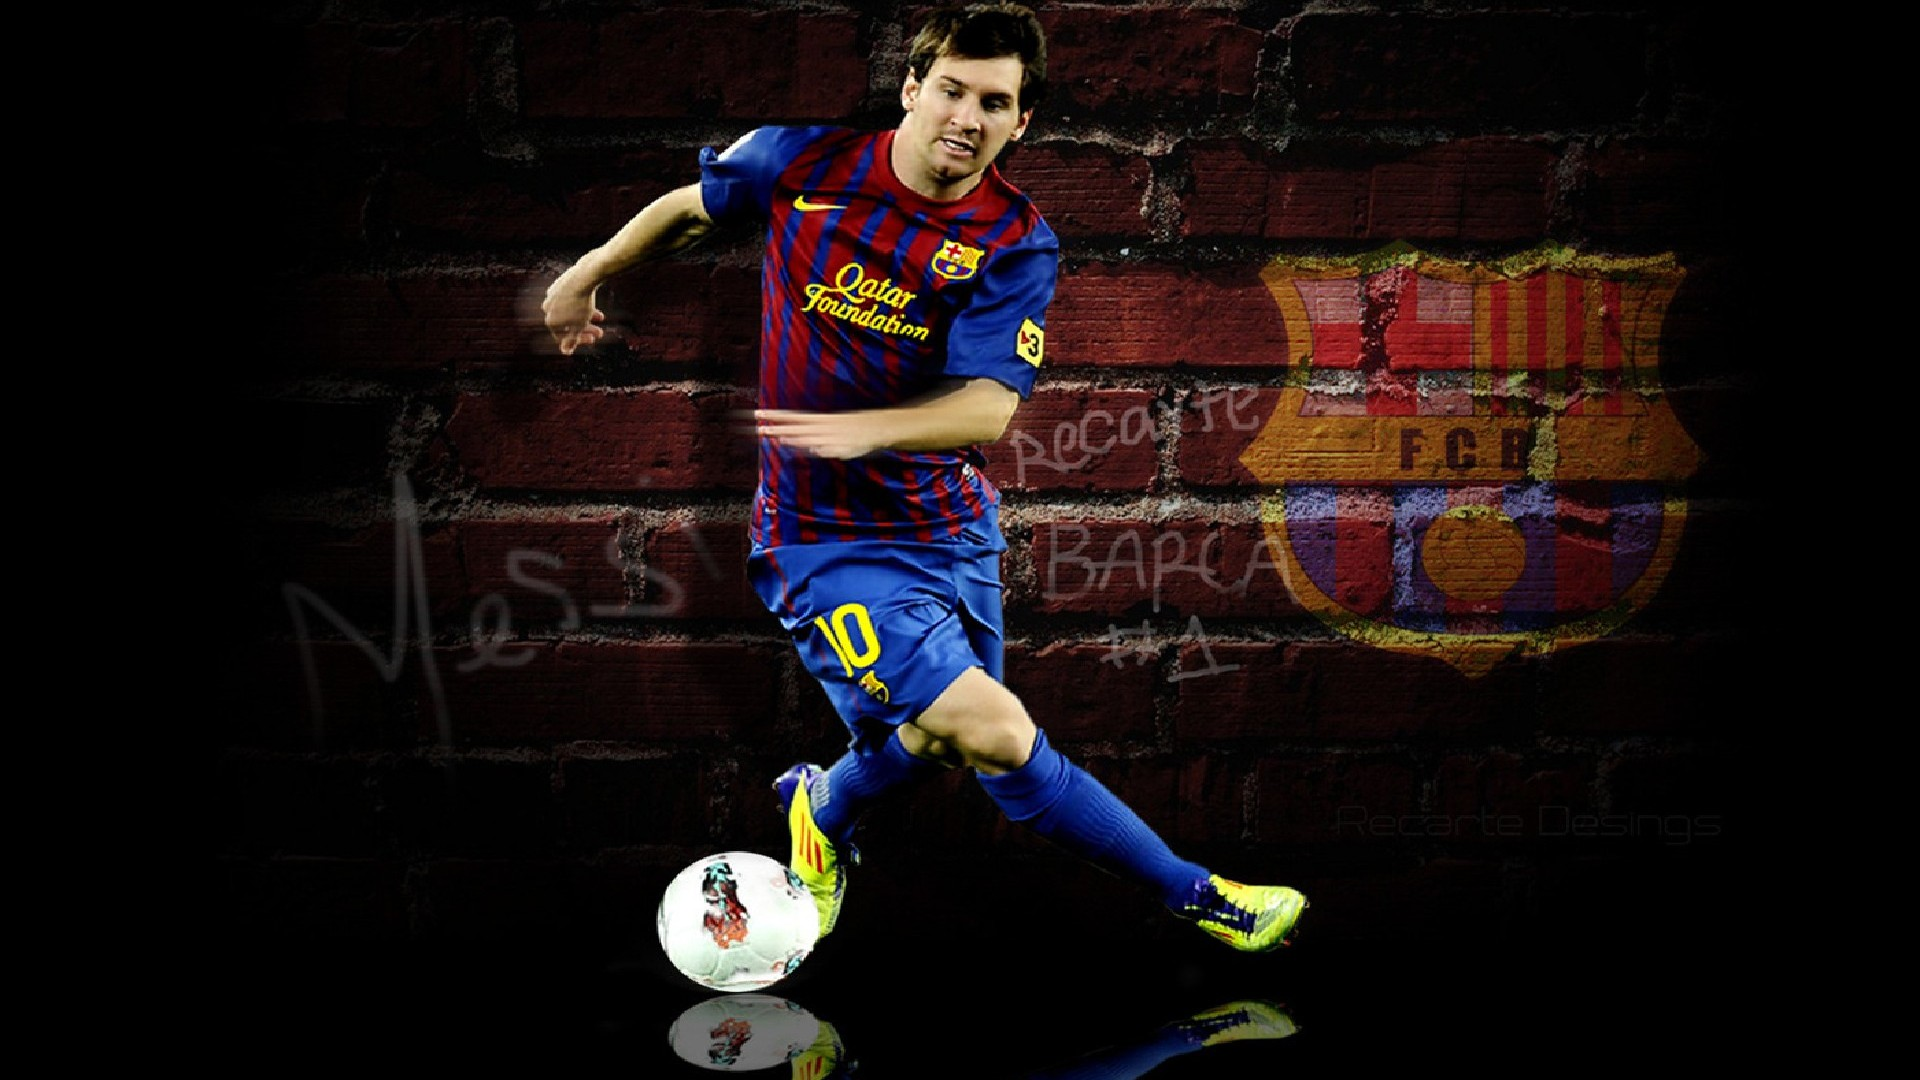 Messi Football Skills Wallpapers Players Teams Leagues 1920x1080